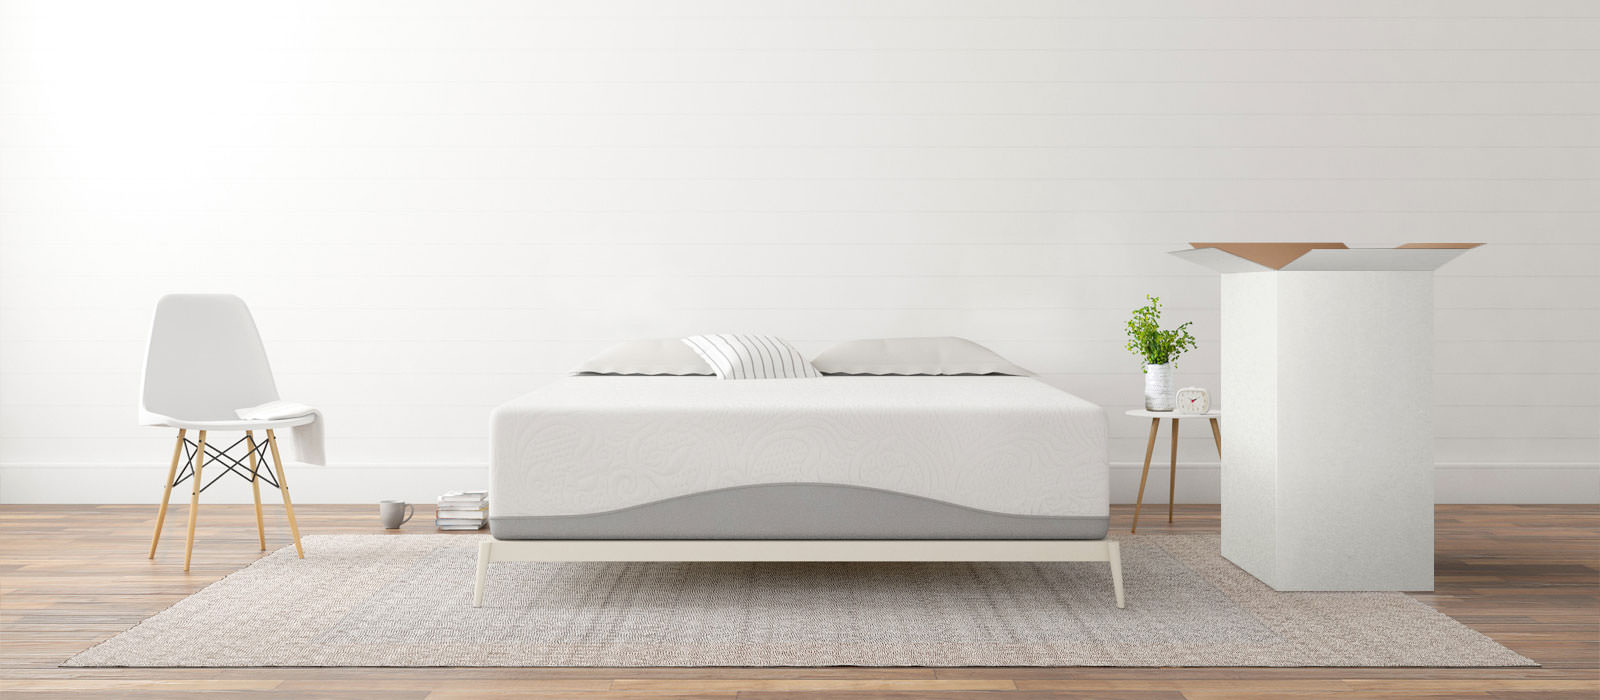 Сheap Memory Foam Mattress Reviews and Buying Guide by www.snoremagazine.com